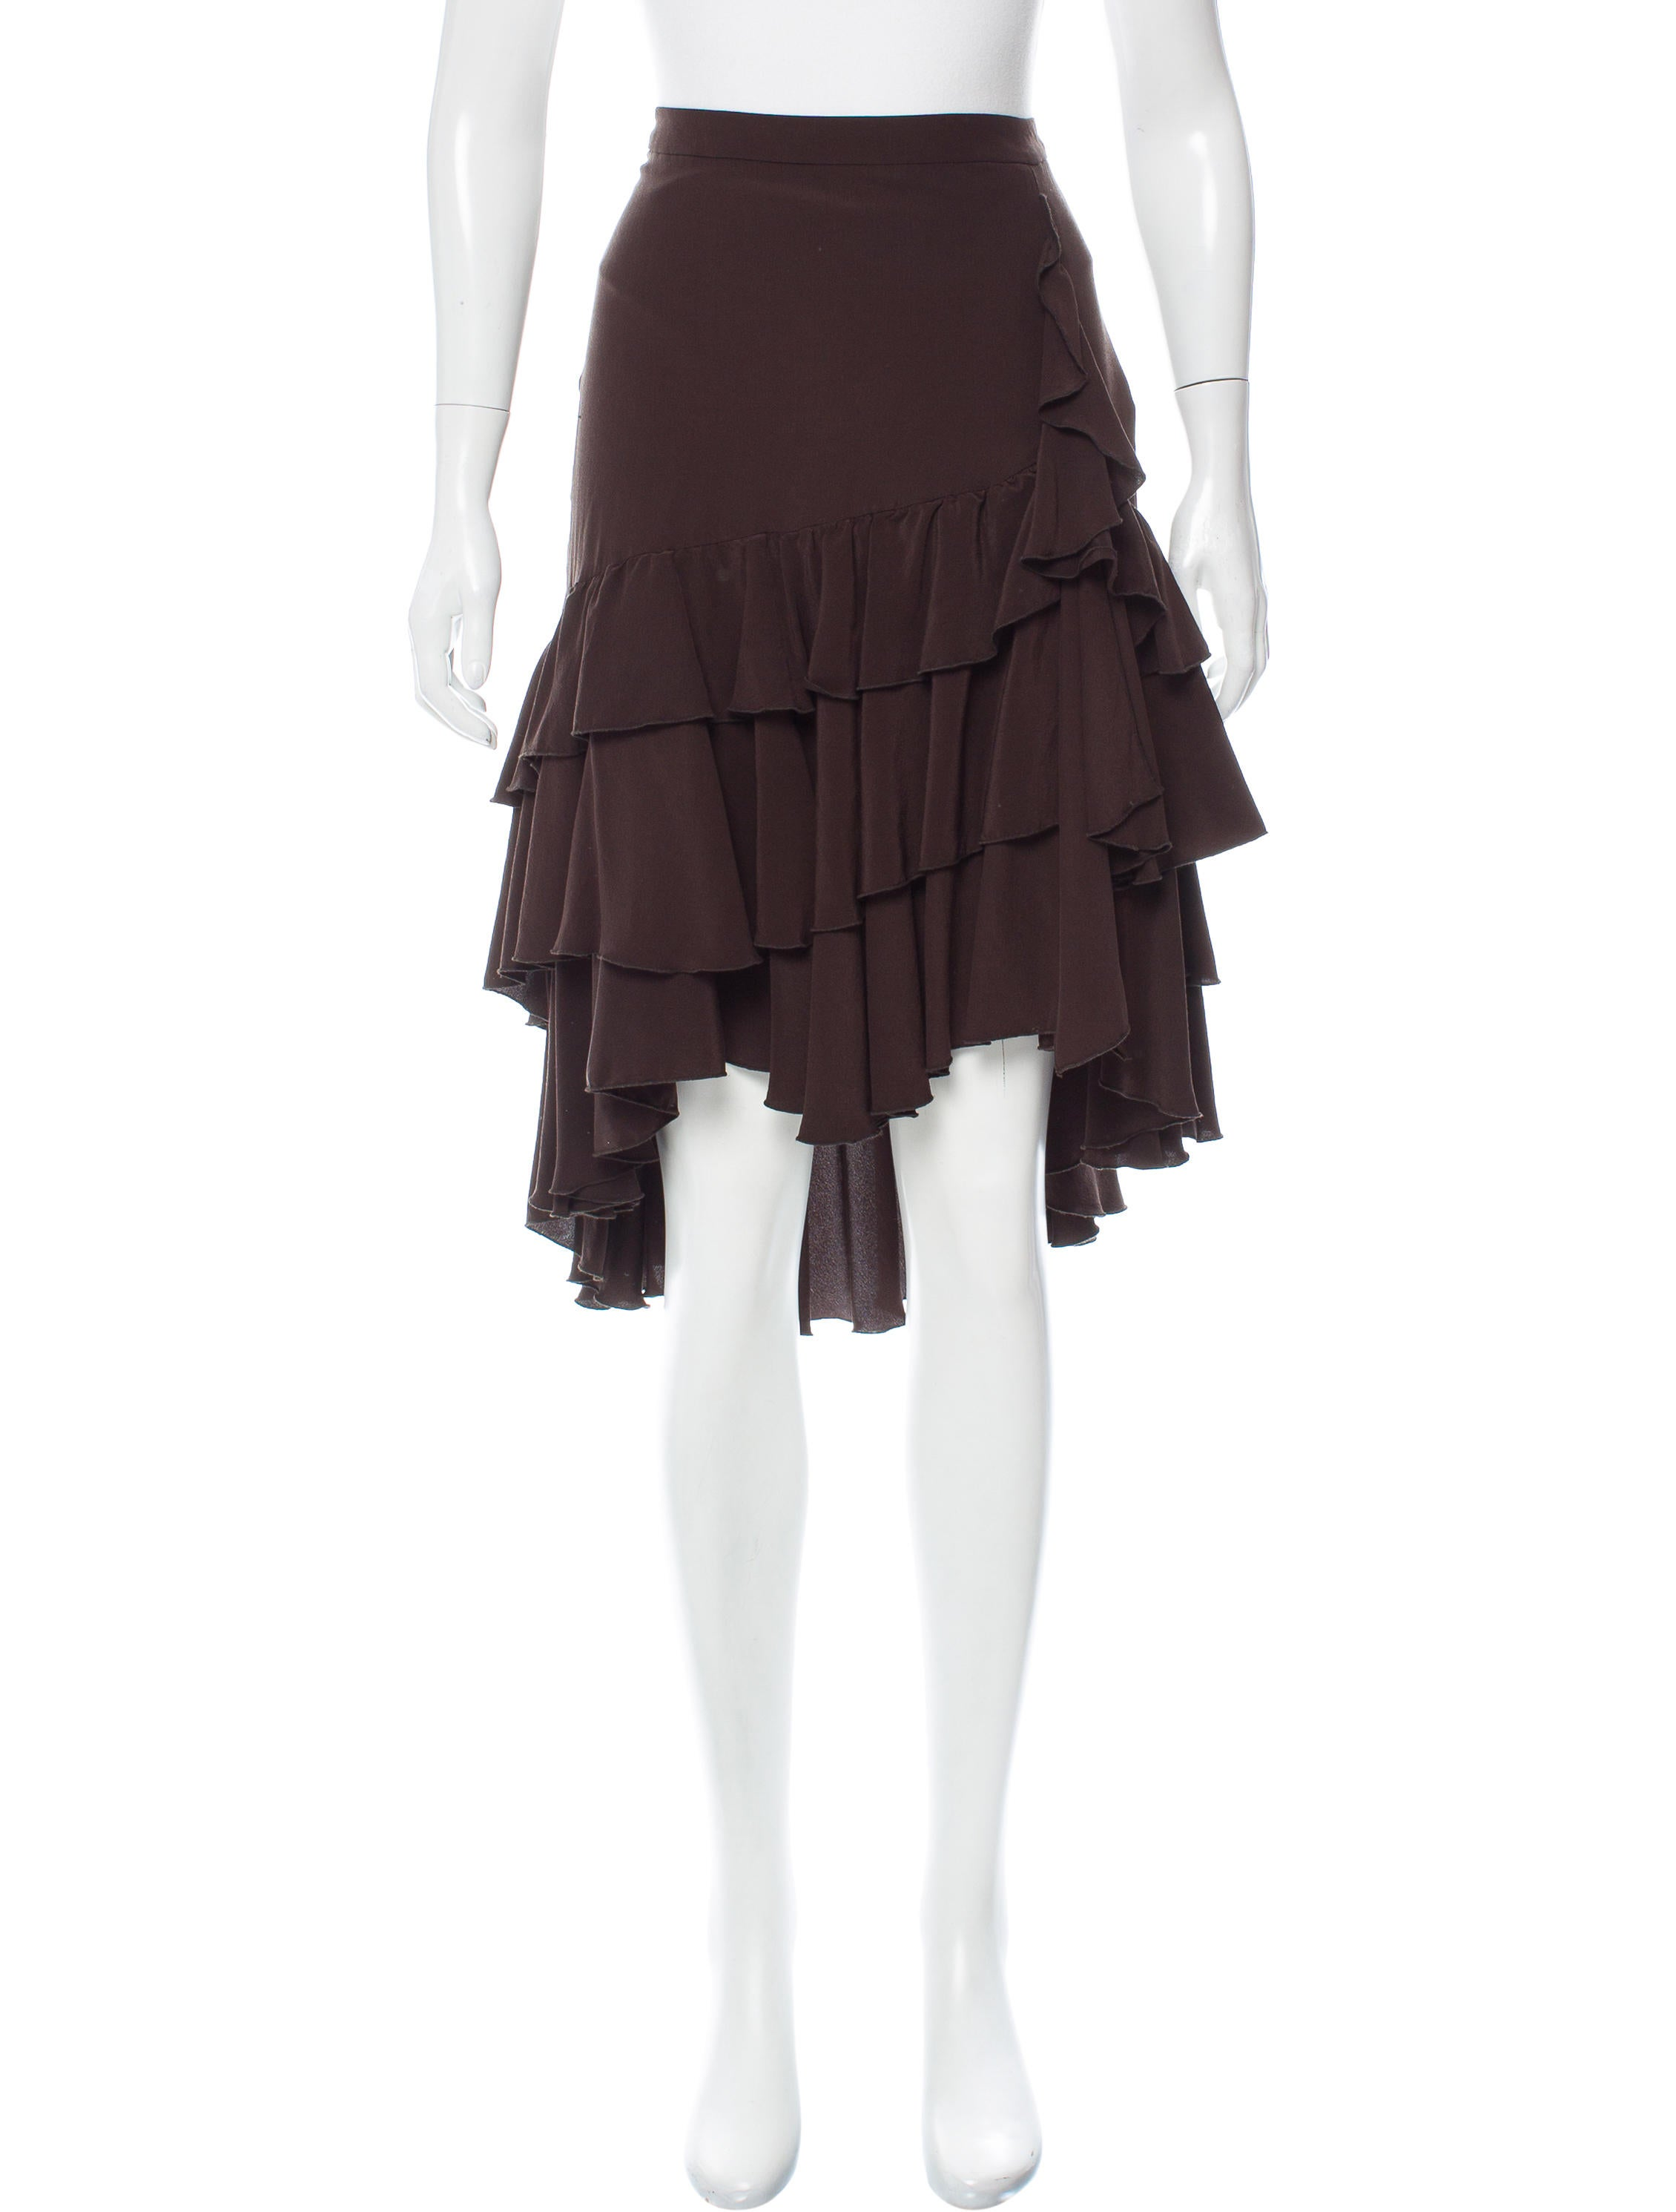 The time Silk ruffle skirt also suggested